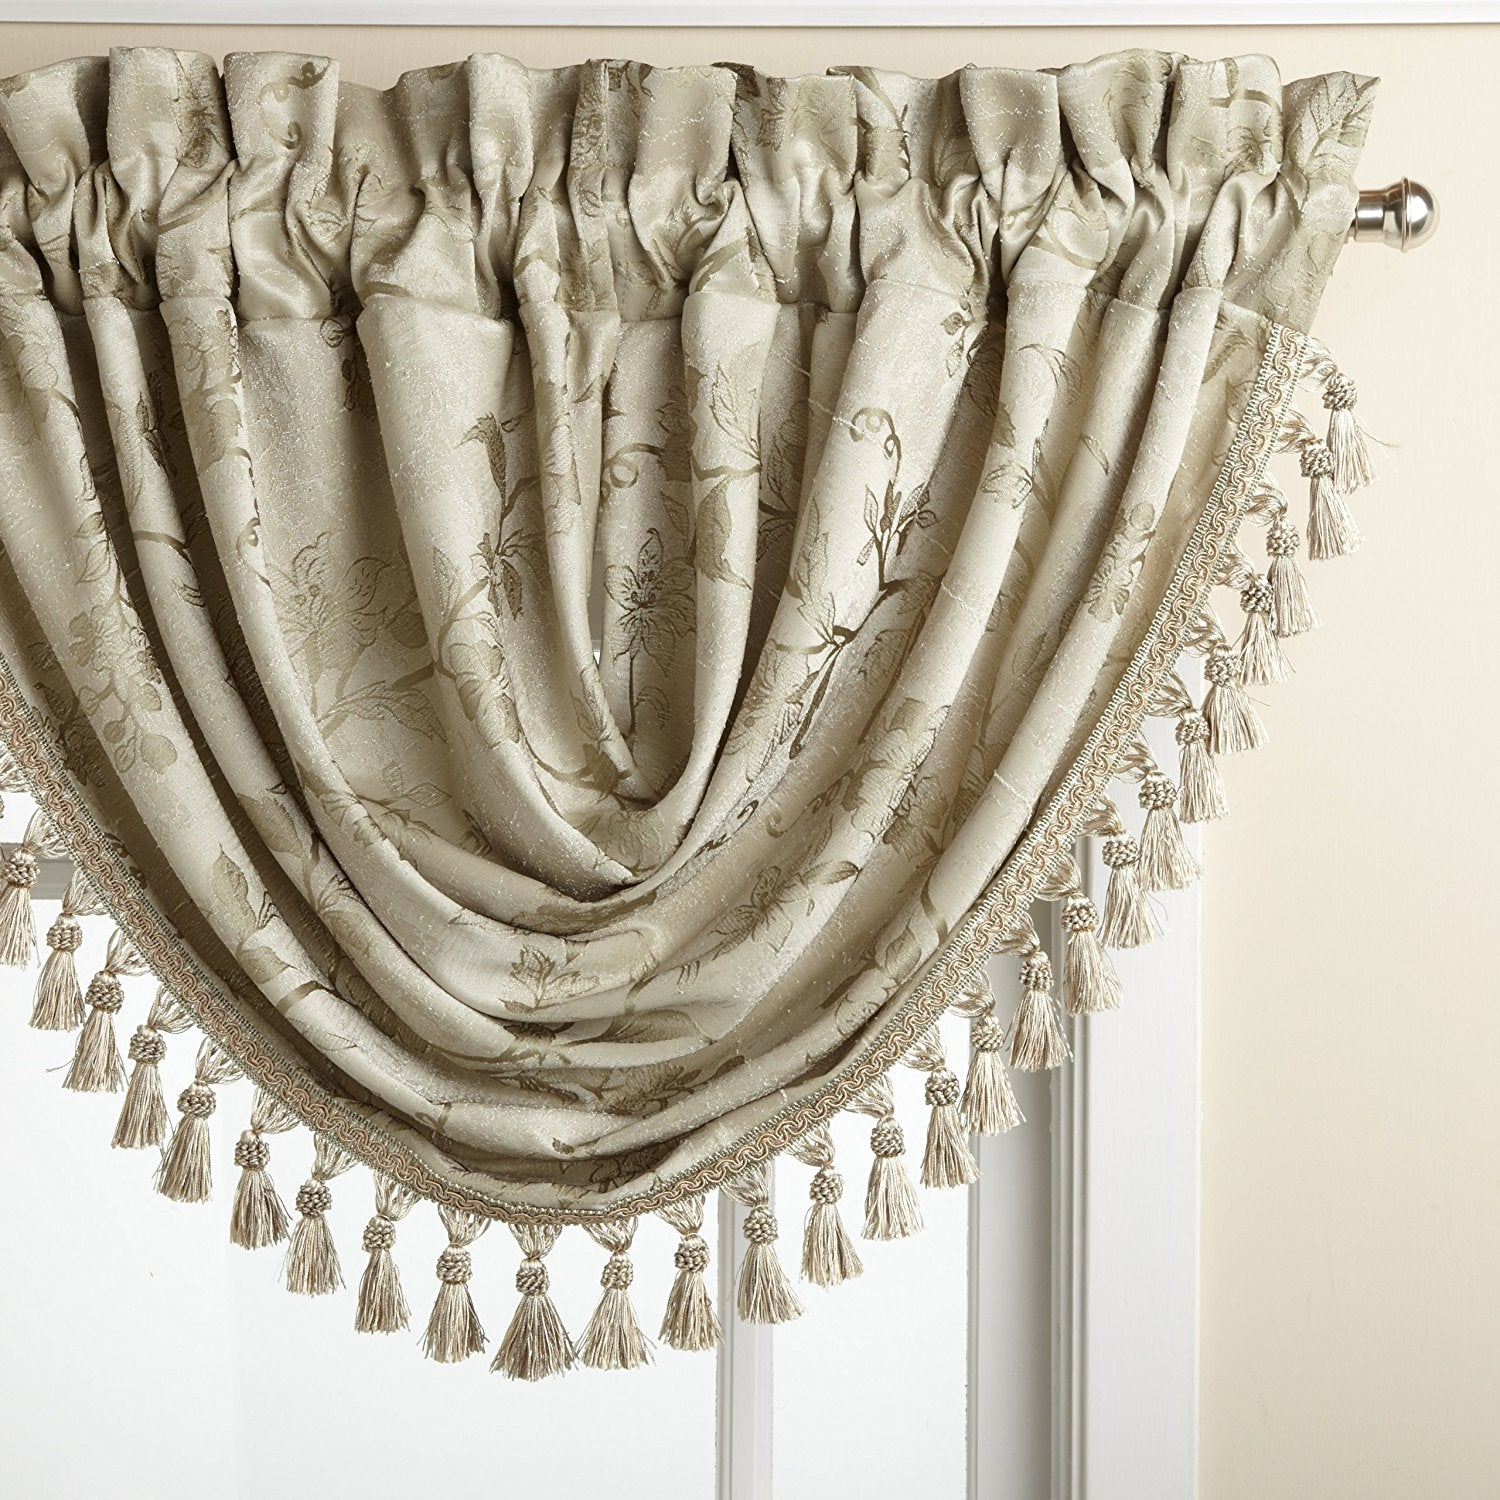 Floral Lustre Rod Pocket Panel Waterfall Valance Marburn Curtains Flower Val Pouch Kuning